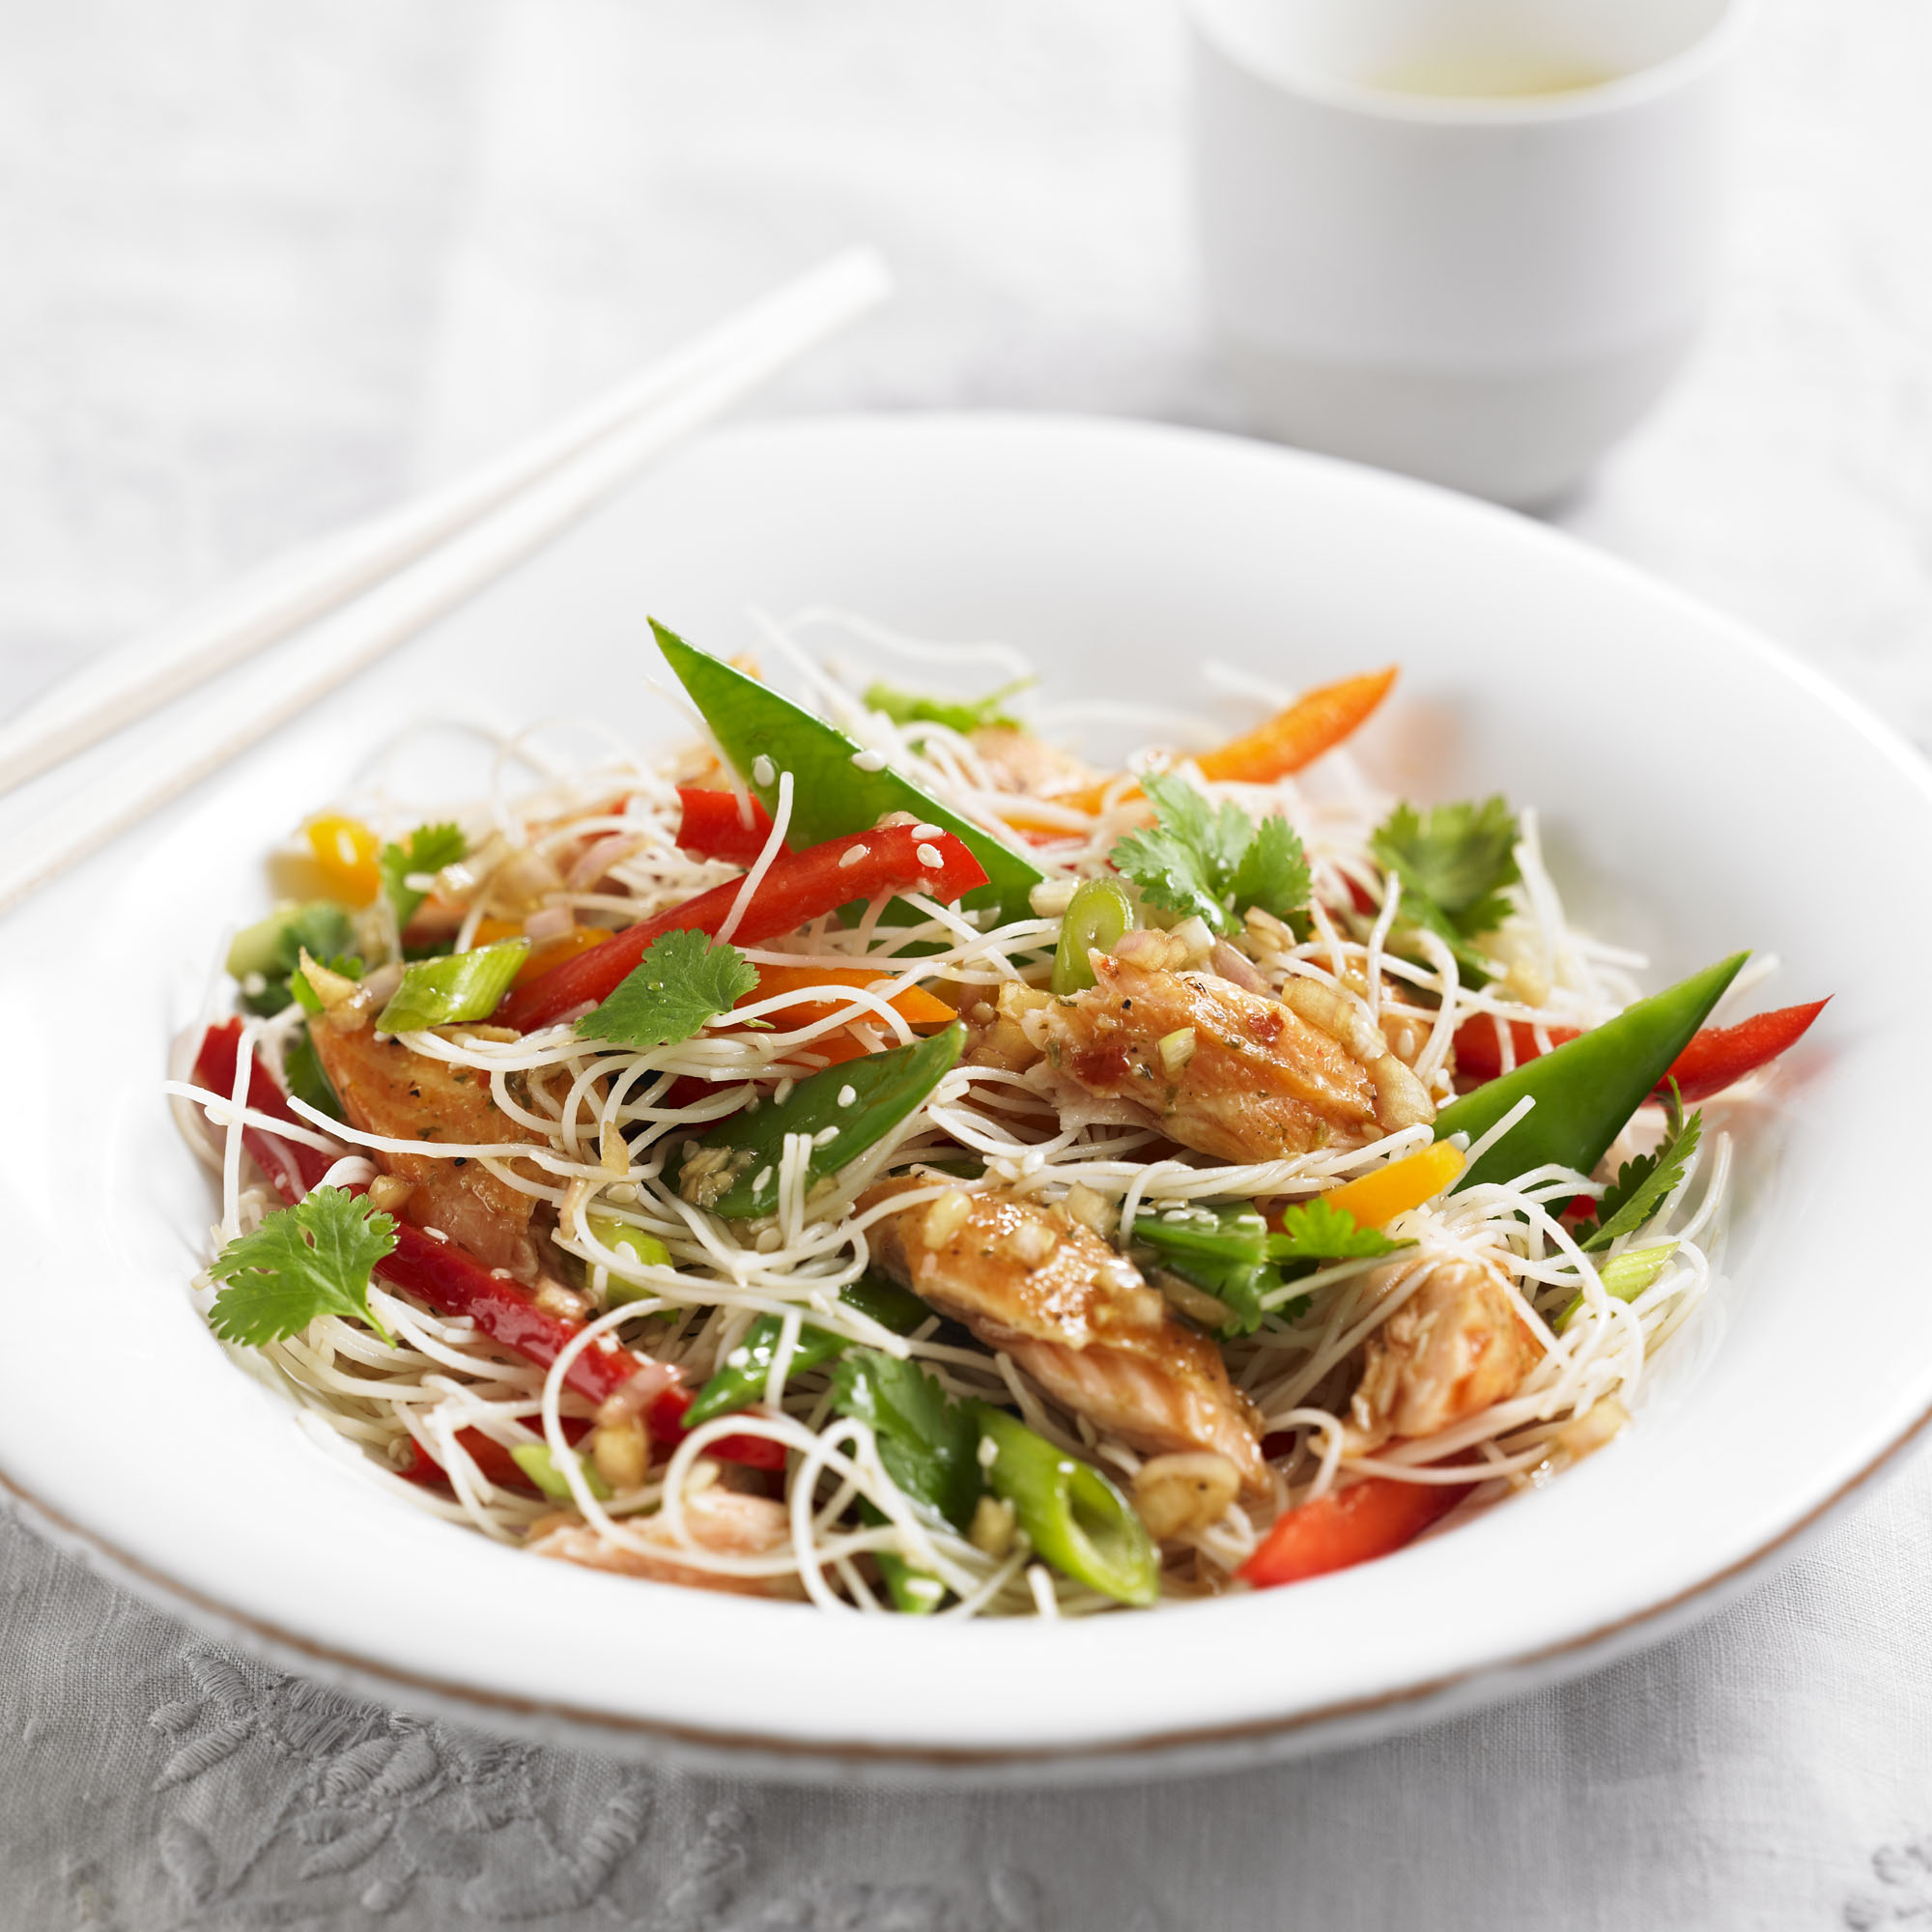 Rice Noodle Salad With Hot Smoked Salmon | Dinner Recipes ...